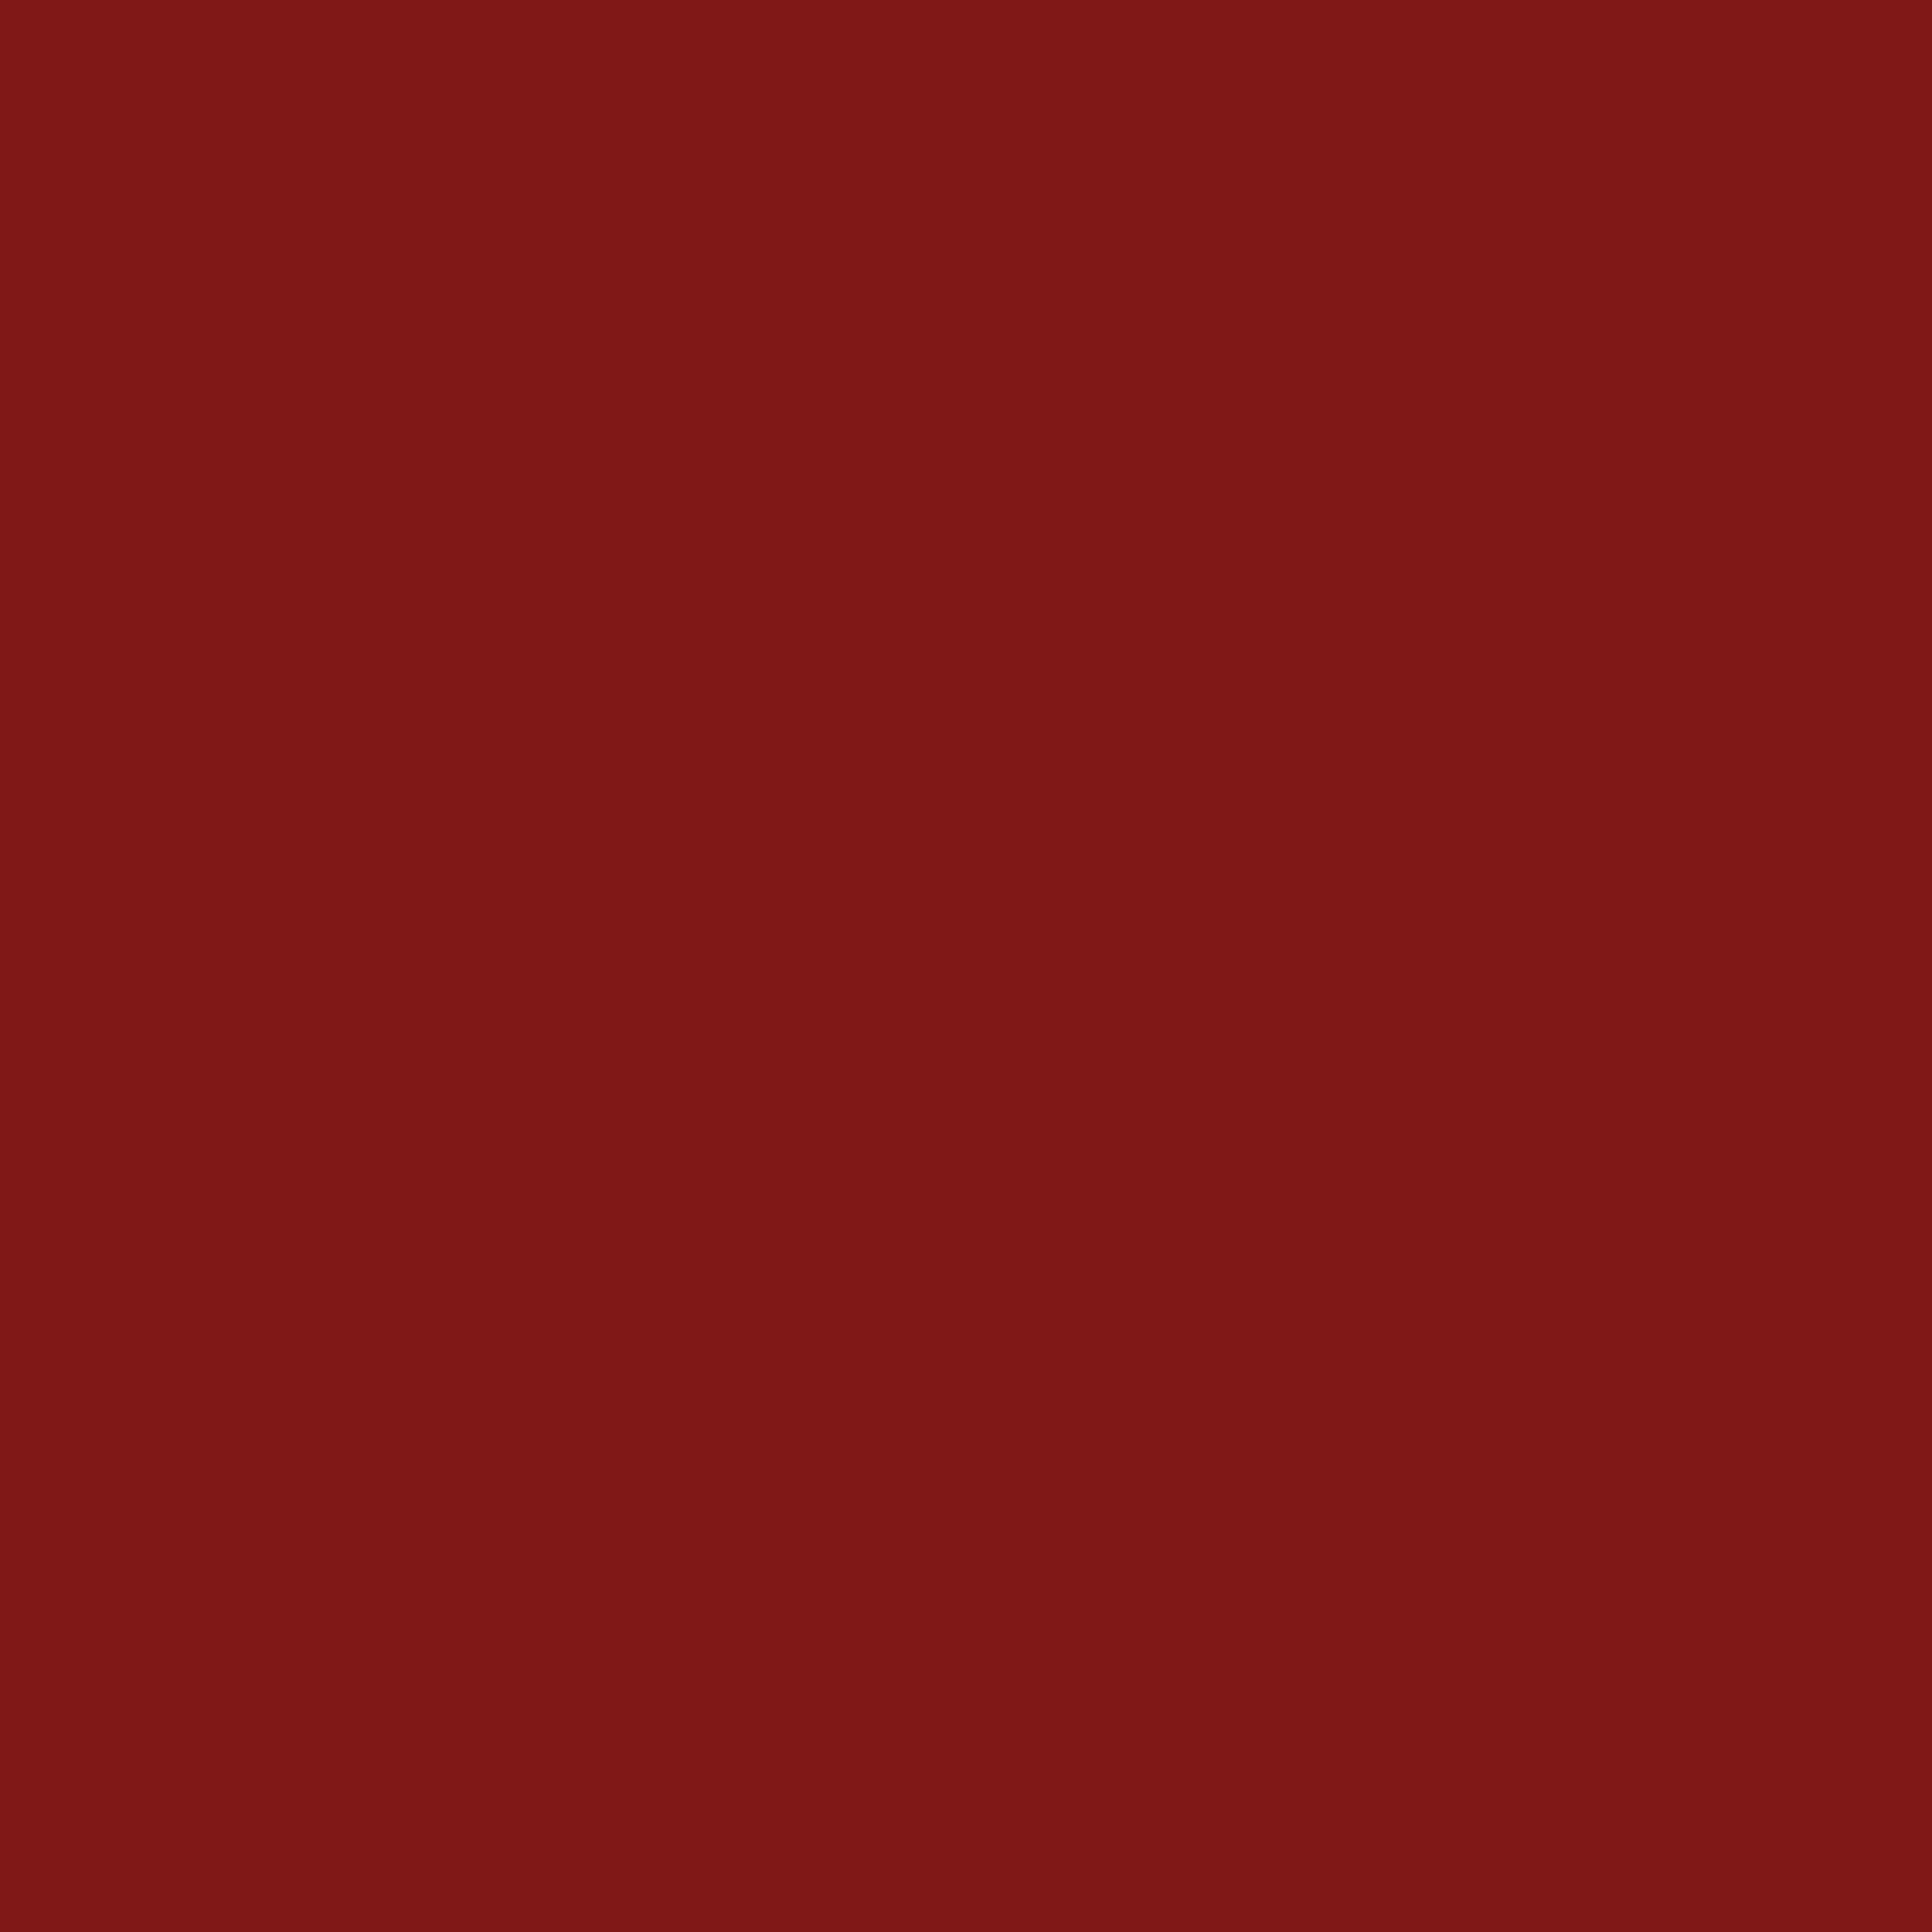 2732x2732 Falu Red Solid Color Background